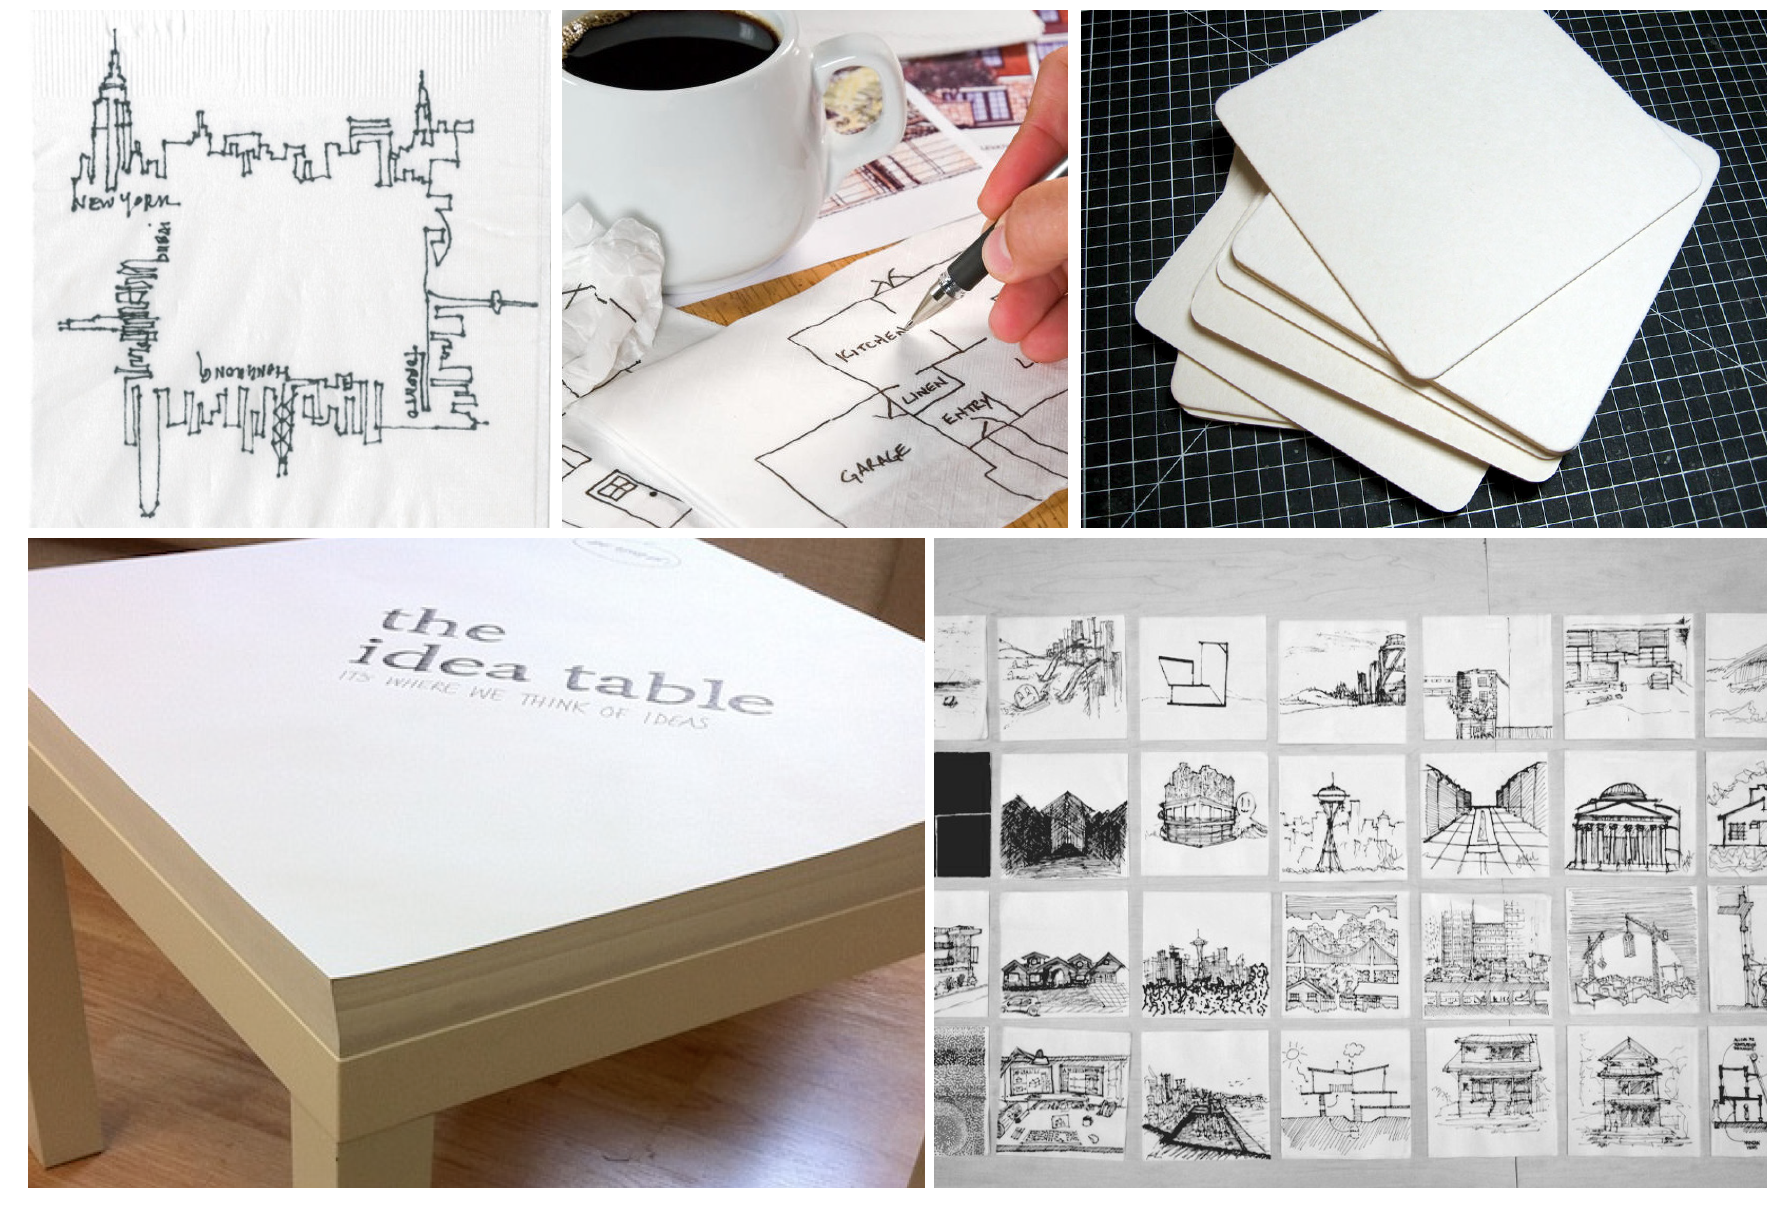 """A playful creative activation invites the visitor to express her creativity and sketch on coasters, napkins or sketchpads located in the bar area.Brand ambassadors will use these sketches to create an instagrammable gallery wall, which ties into OBE's brand message """"Engineering Your Creativity."""""""